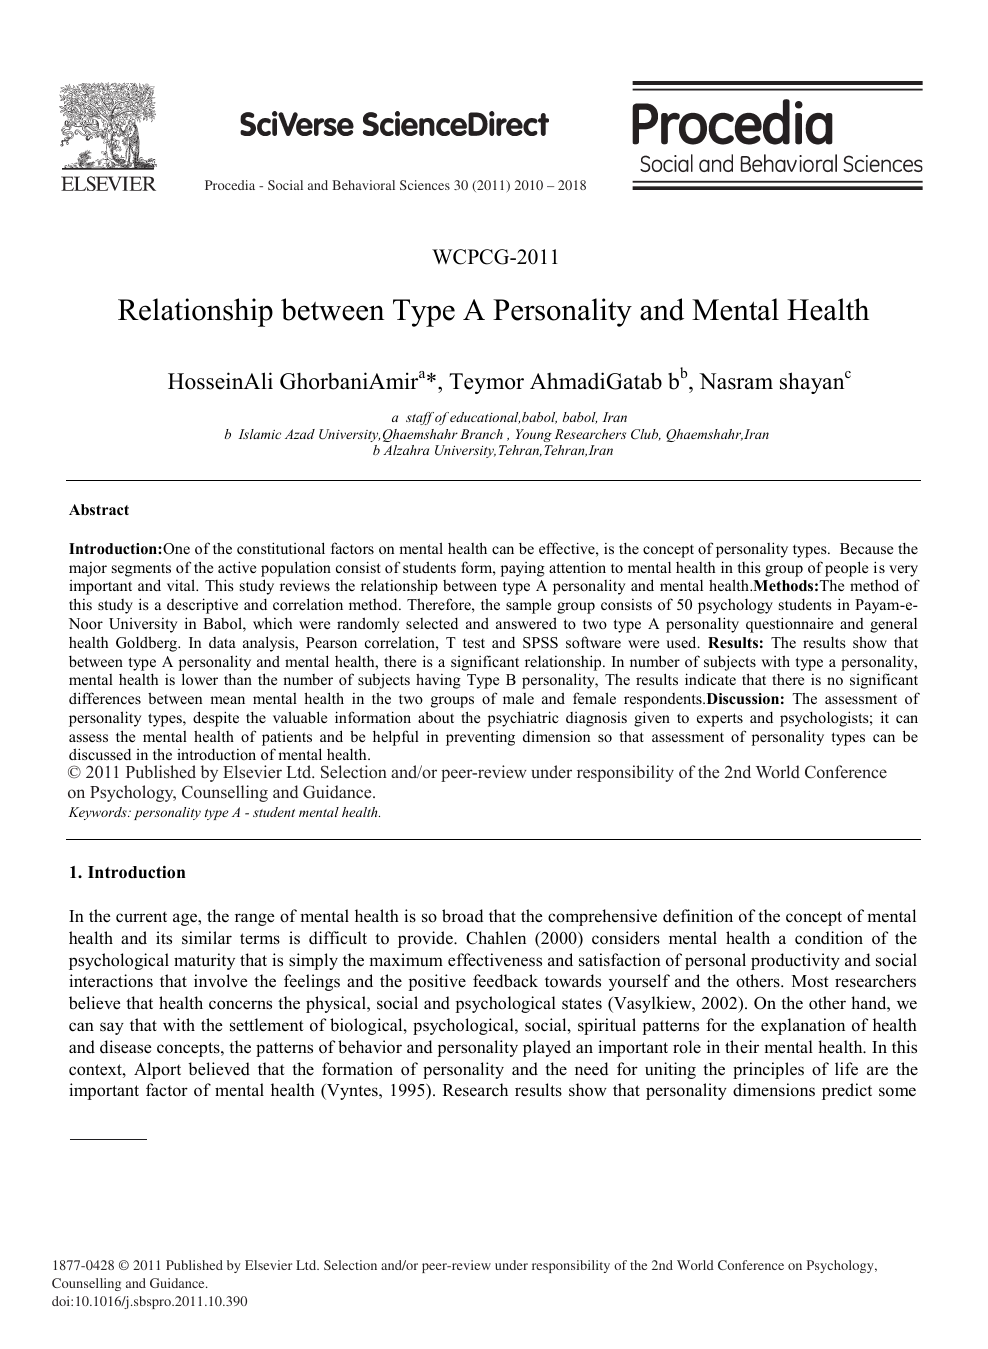 Relationship between Type A Personality and Mental Health